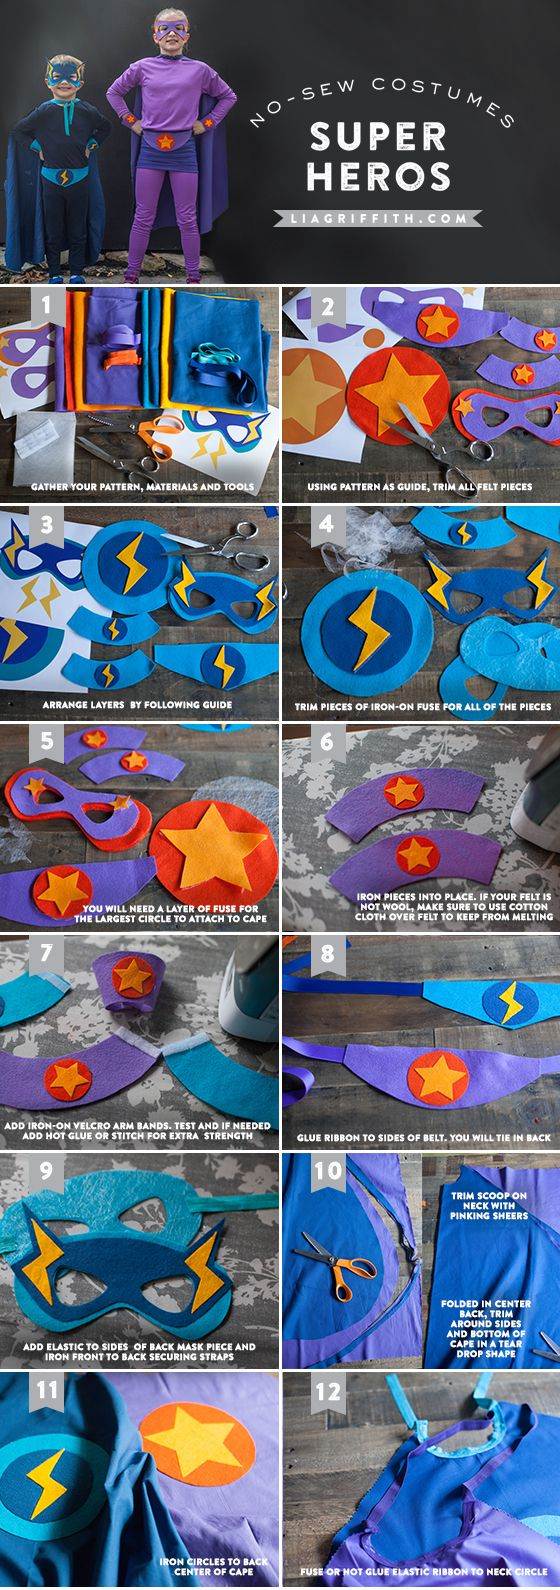 DIY Super Hero Costume Tutorial